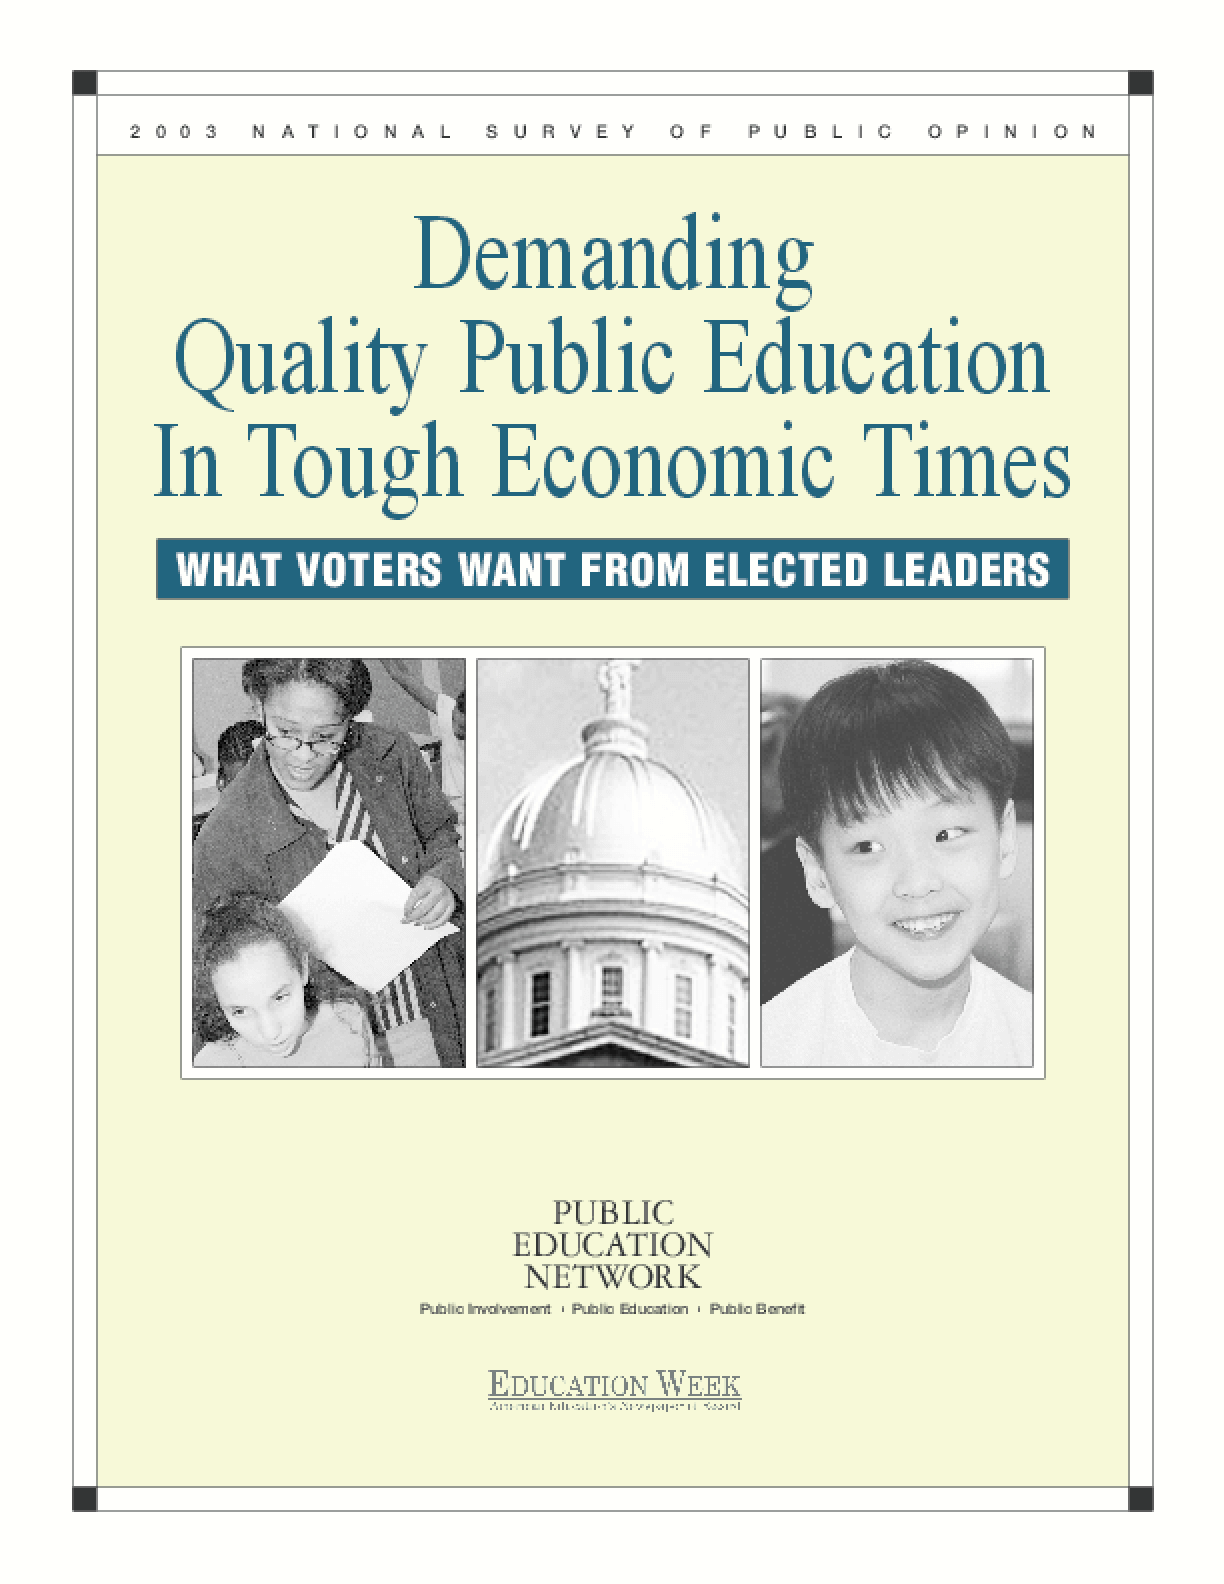 Demanding Quality Public Education In Tough Economic Times: What Voters Want from Elected Leaders